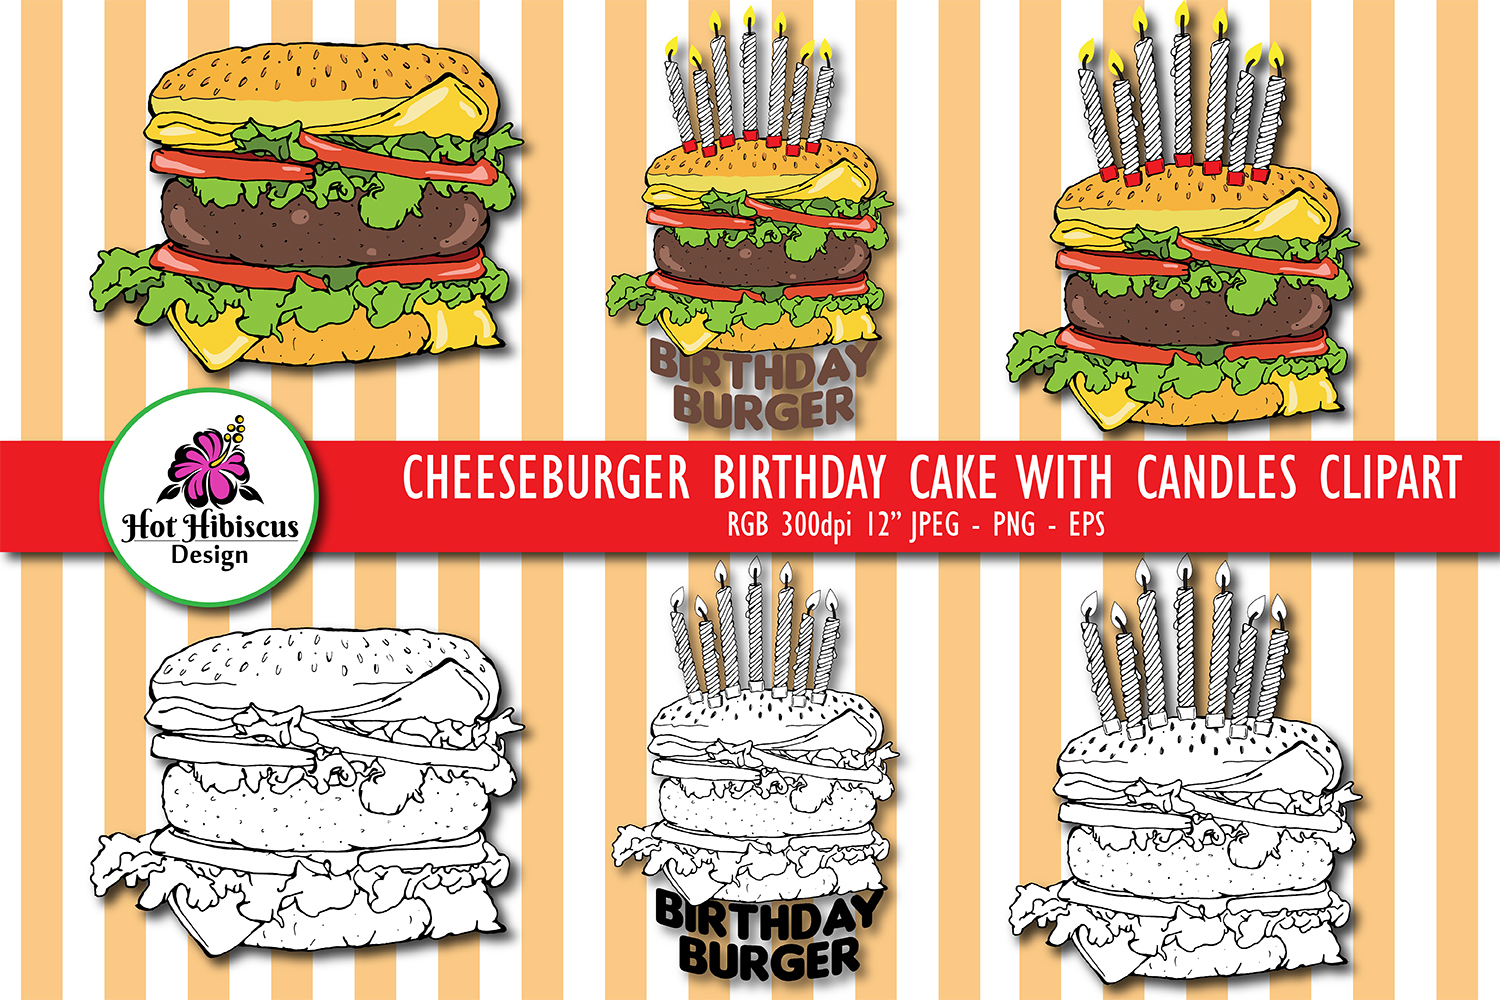 Cheeseburger Birthday Cake with Candles Hand Drawn Clipart example image 1